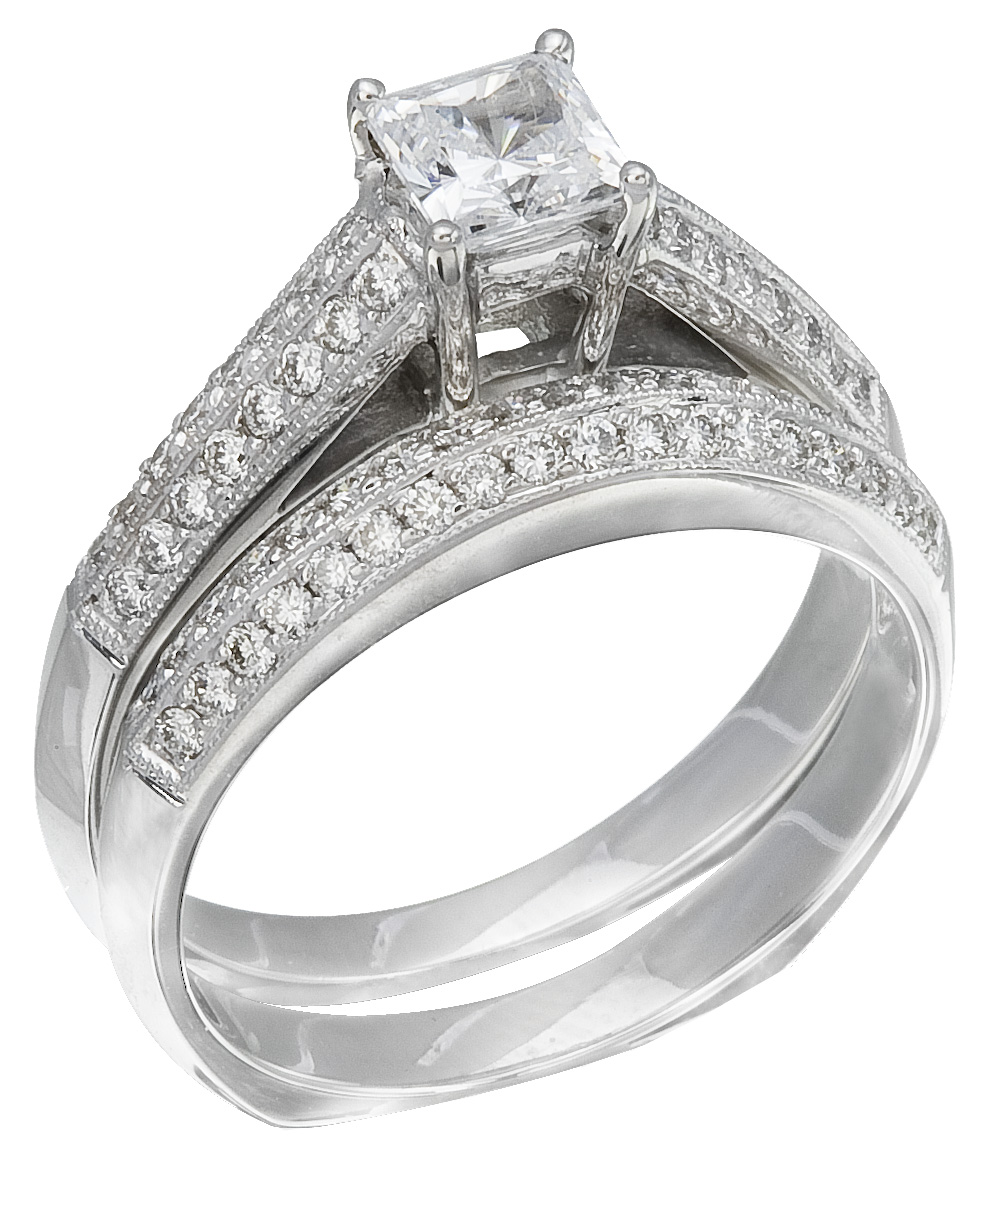 Diamond Wedding Ring Set, 46 Carat Diamonds On 14k White Gold  Image 0